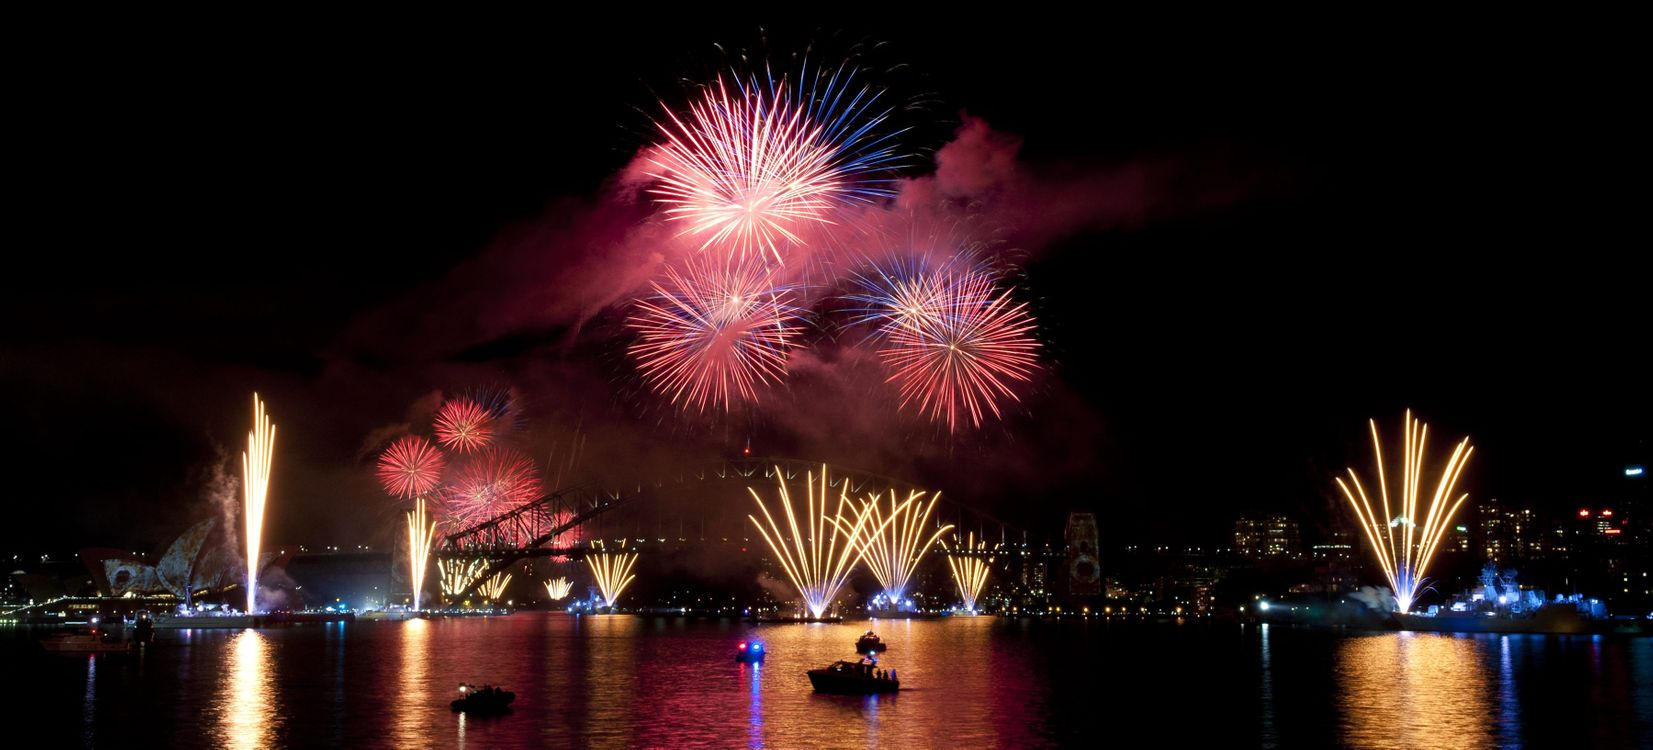 Free photo Sydney, fireworks, explosion - to desktop